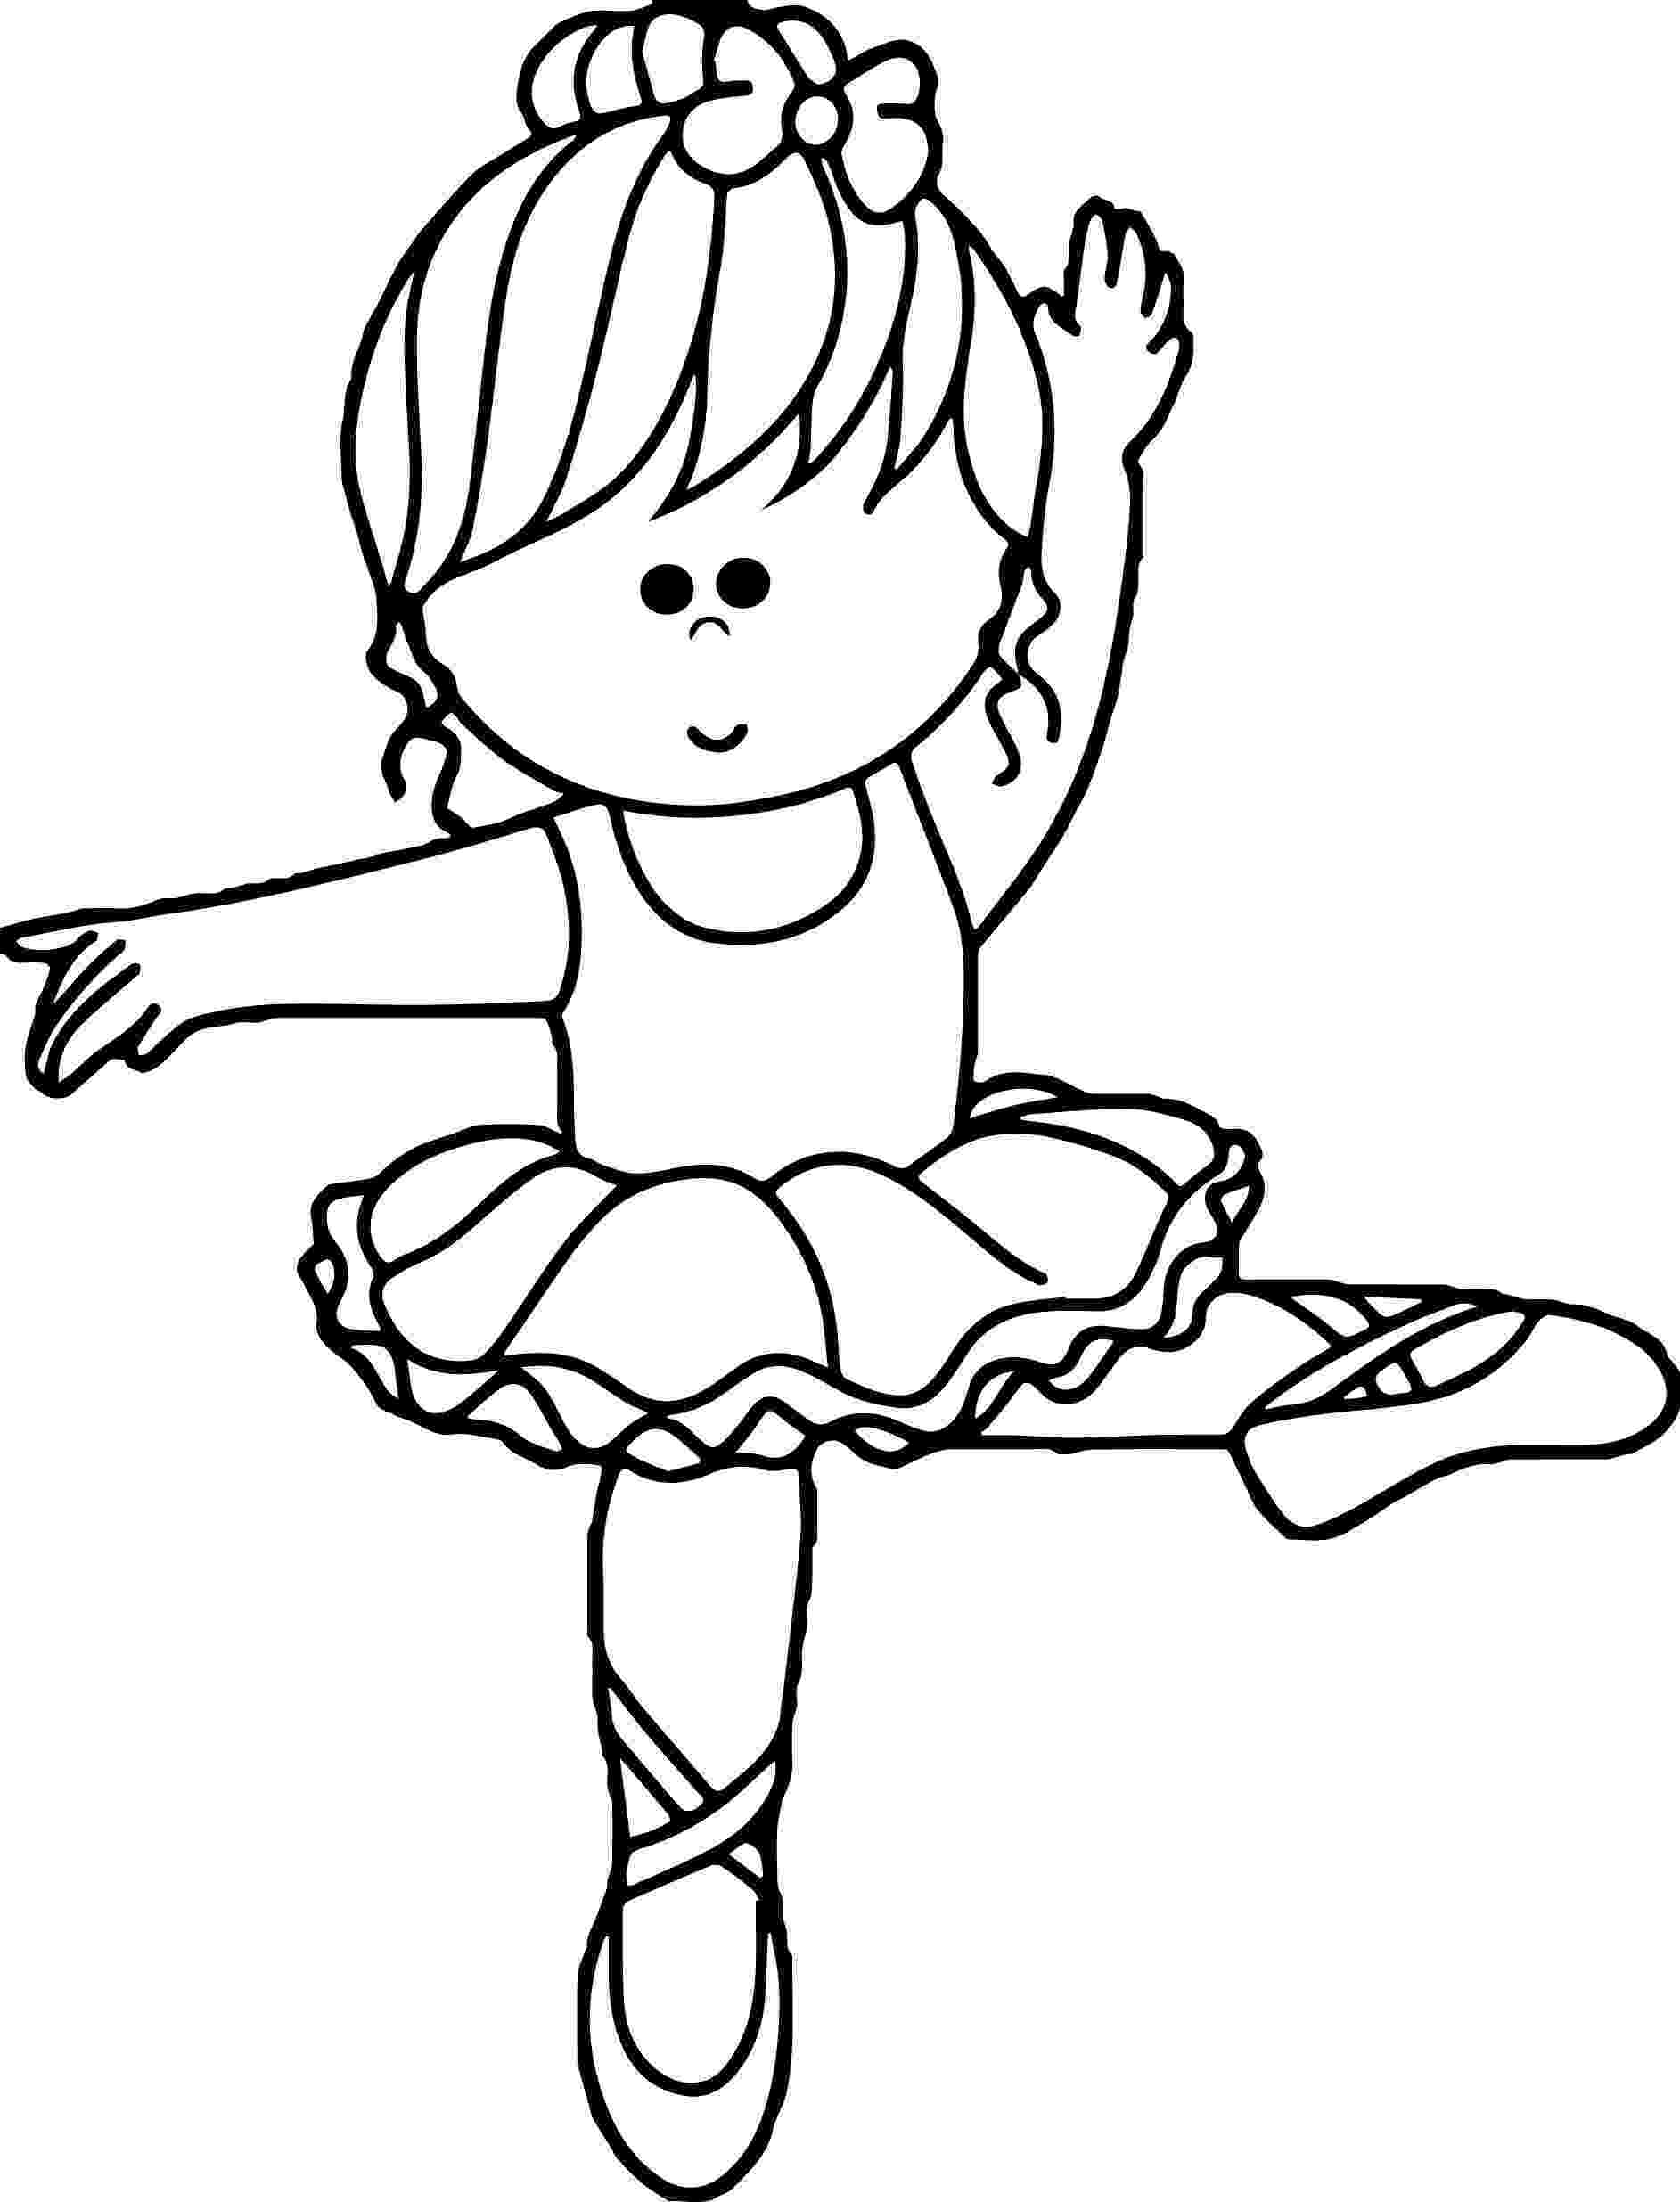 coloring pages ballerina strawberry shortcake ballerina coloring page free ballerina coloring pages